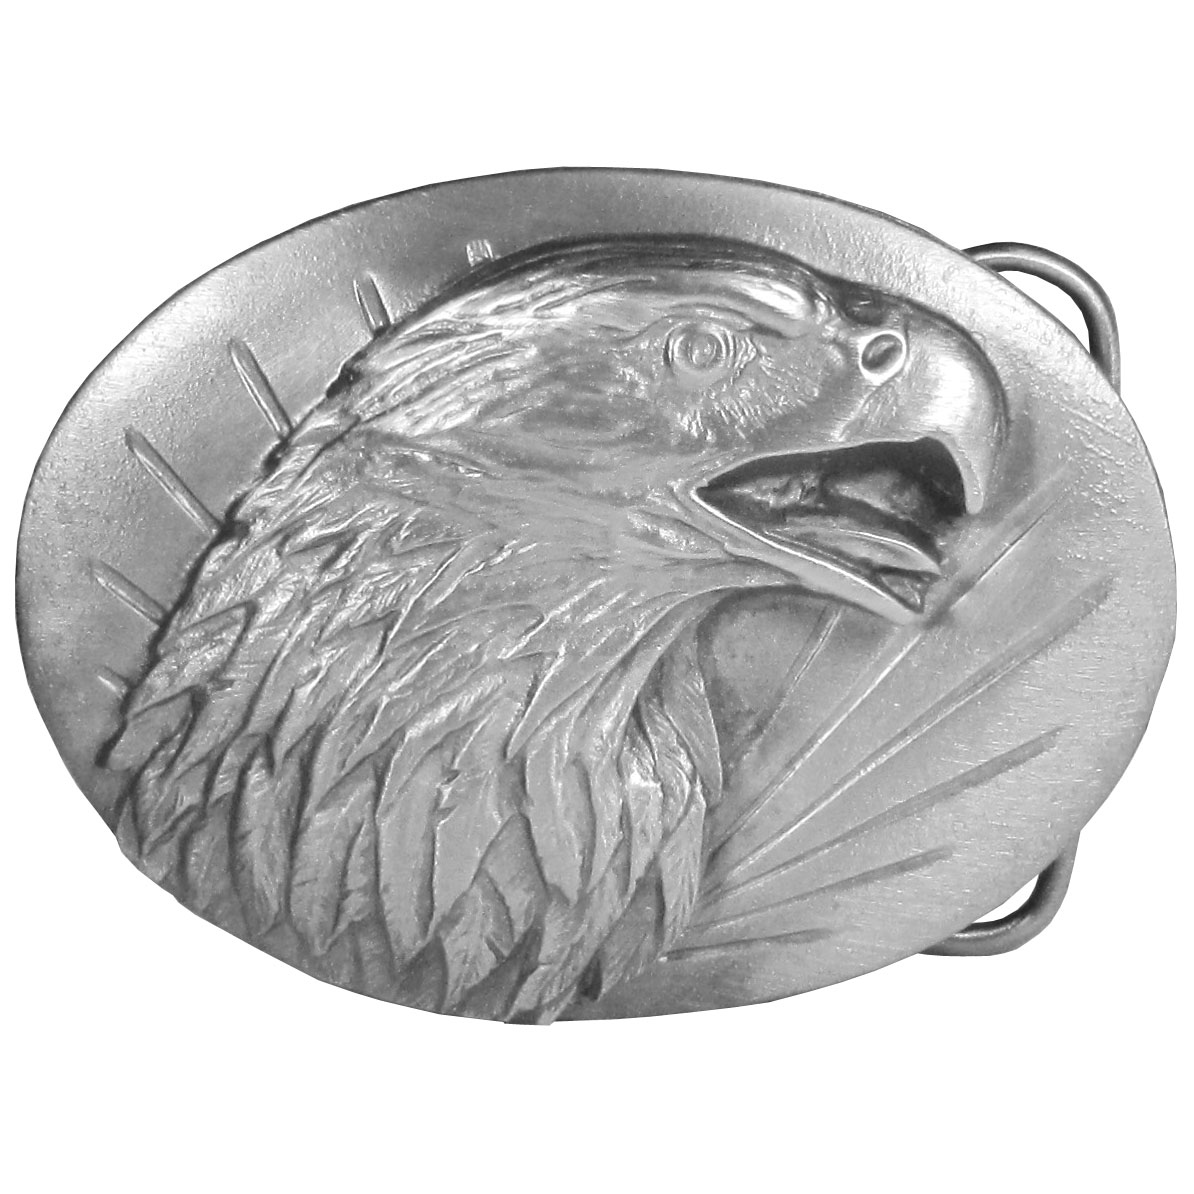 "Eagle Antiqued Belt Buckle - ""This belt buckle celebrates the eagle. On the front is the head of an eagle, on the back are the words, """"The eagle is one of the largest and most powerful birds in the world. The largest eagles are the golden and bald eagle. They weight as much as fourteen pounds and may have a wing span of over seven feet."""" This exquisitely carved buckle is made of fully cast metal with a standard bale that fits up to 2"""" belts."""